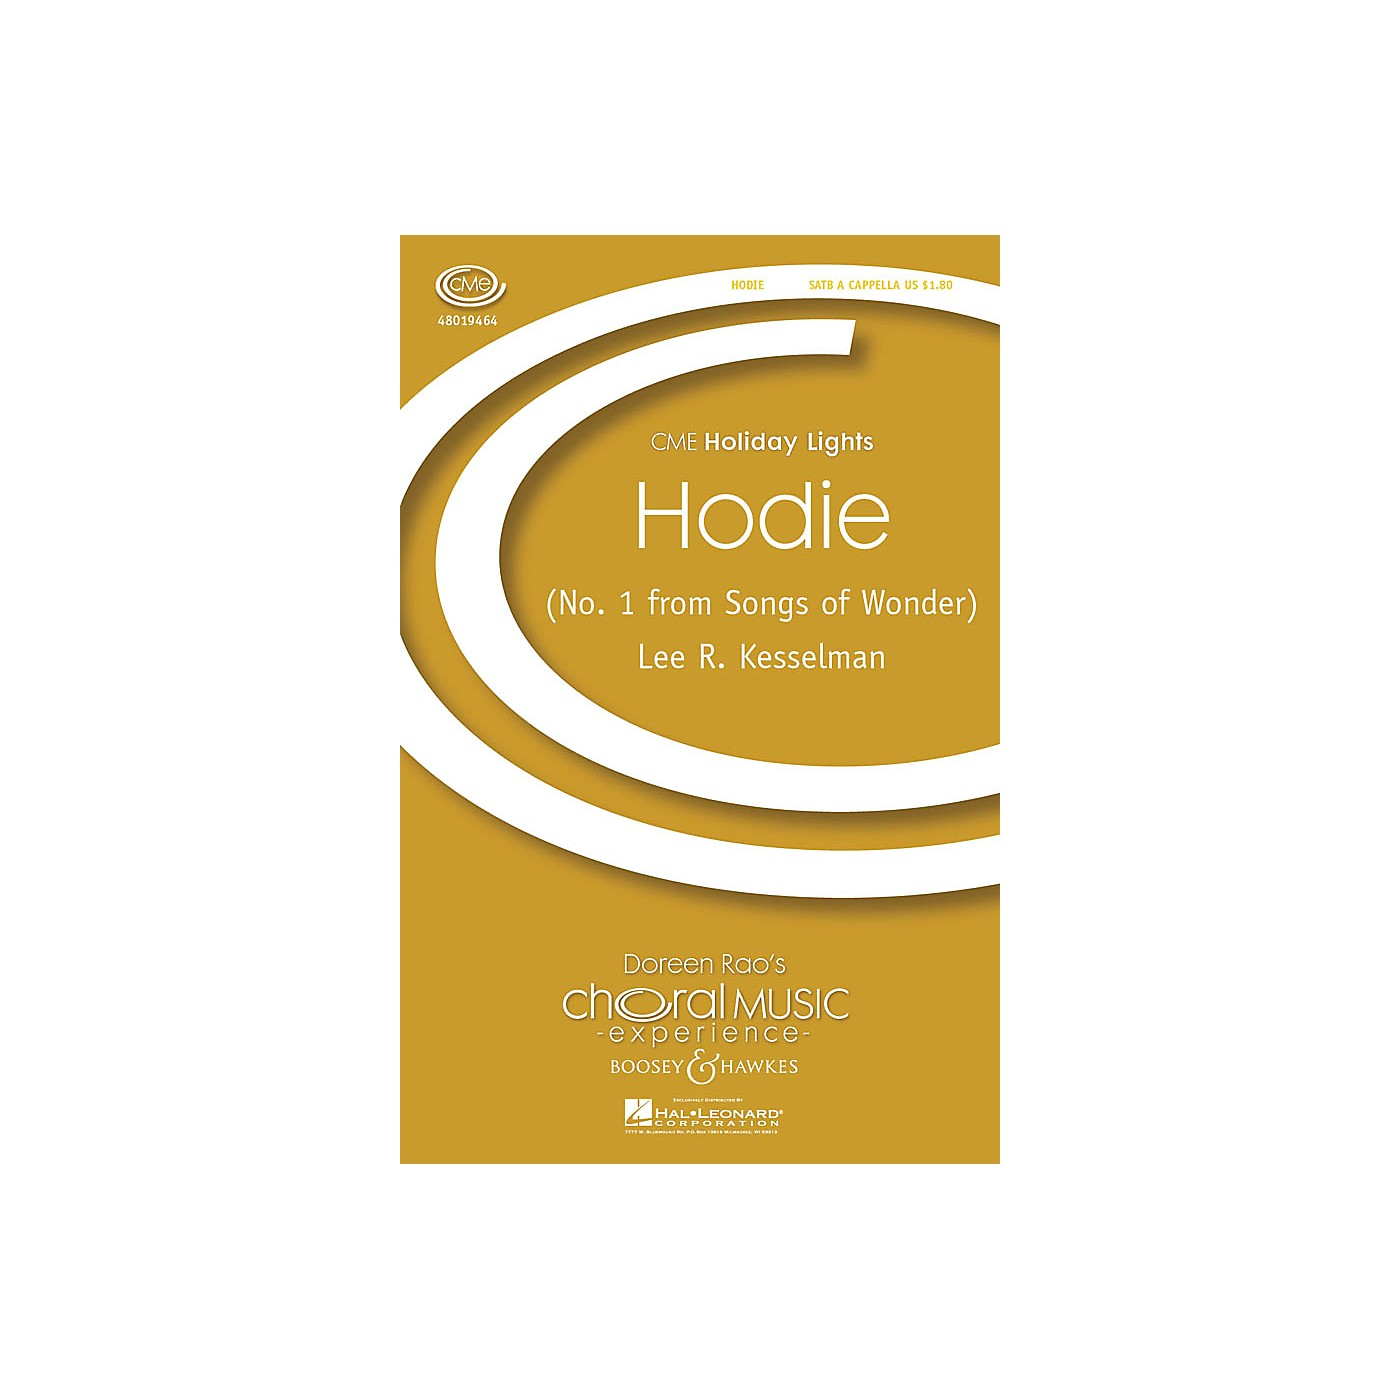 Boosey and Hawkes Hodie (No. 1 from Songs of Wonder) CME Holiday Lights SATB a cappella composed by Lee Kesselman thumbnail